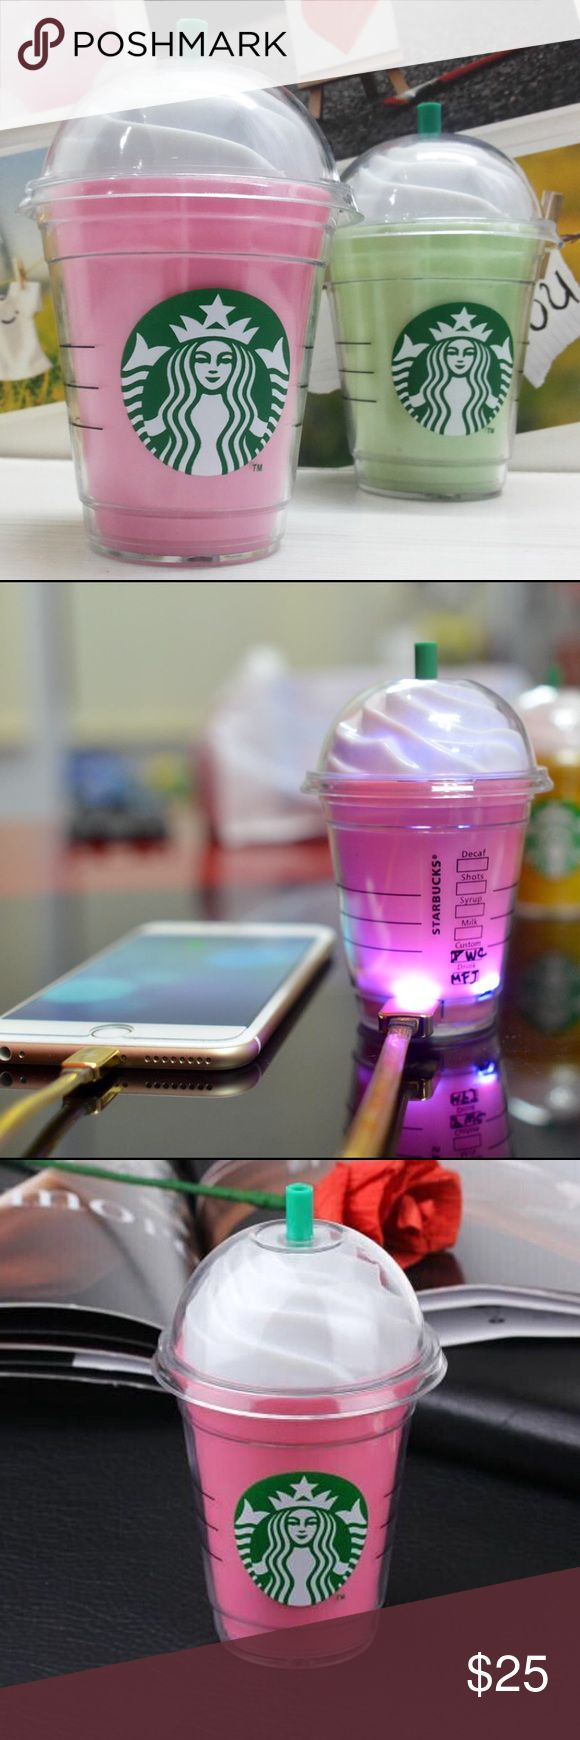 Cute Starbucks Frappe PowerBank Pink and Green Tea Ever feel drained? Like a Starbucks might hit the spot?? You're phone does too! Tech specs: 5200mAh USB Port Cute AF! Starbucks Accessories Phone Cases